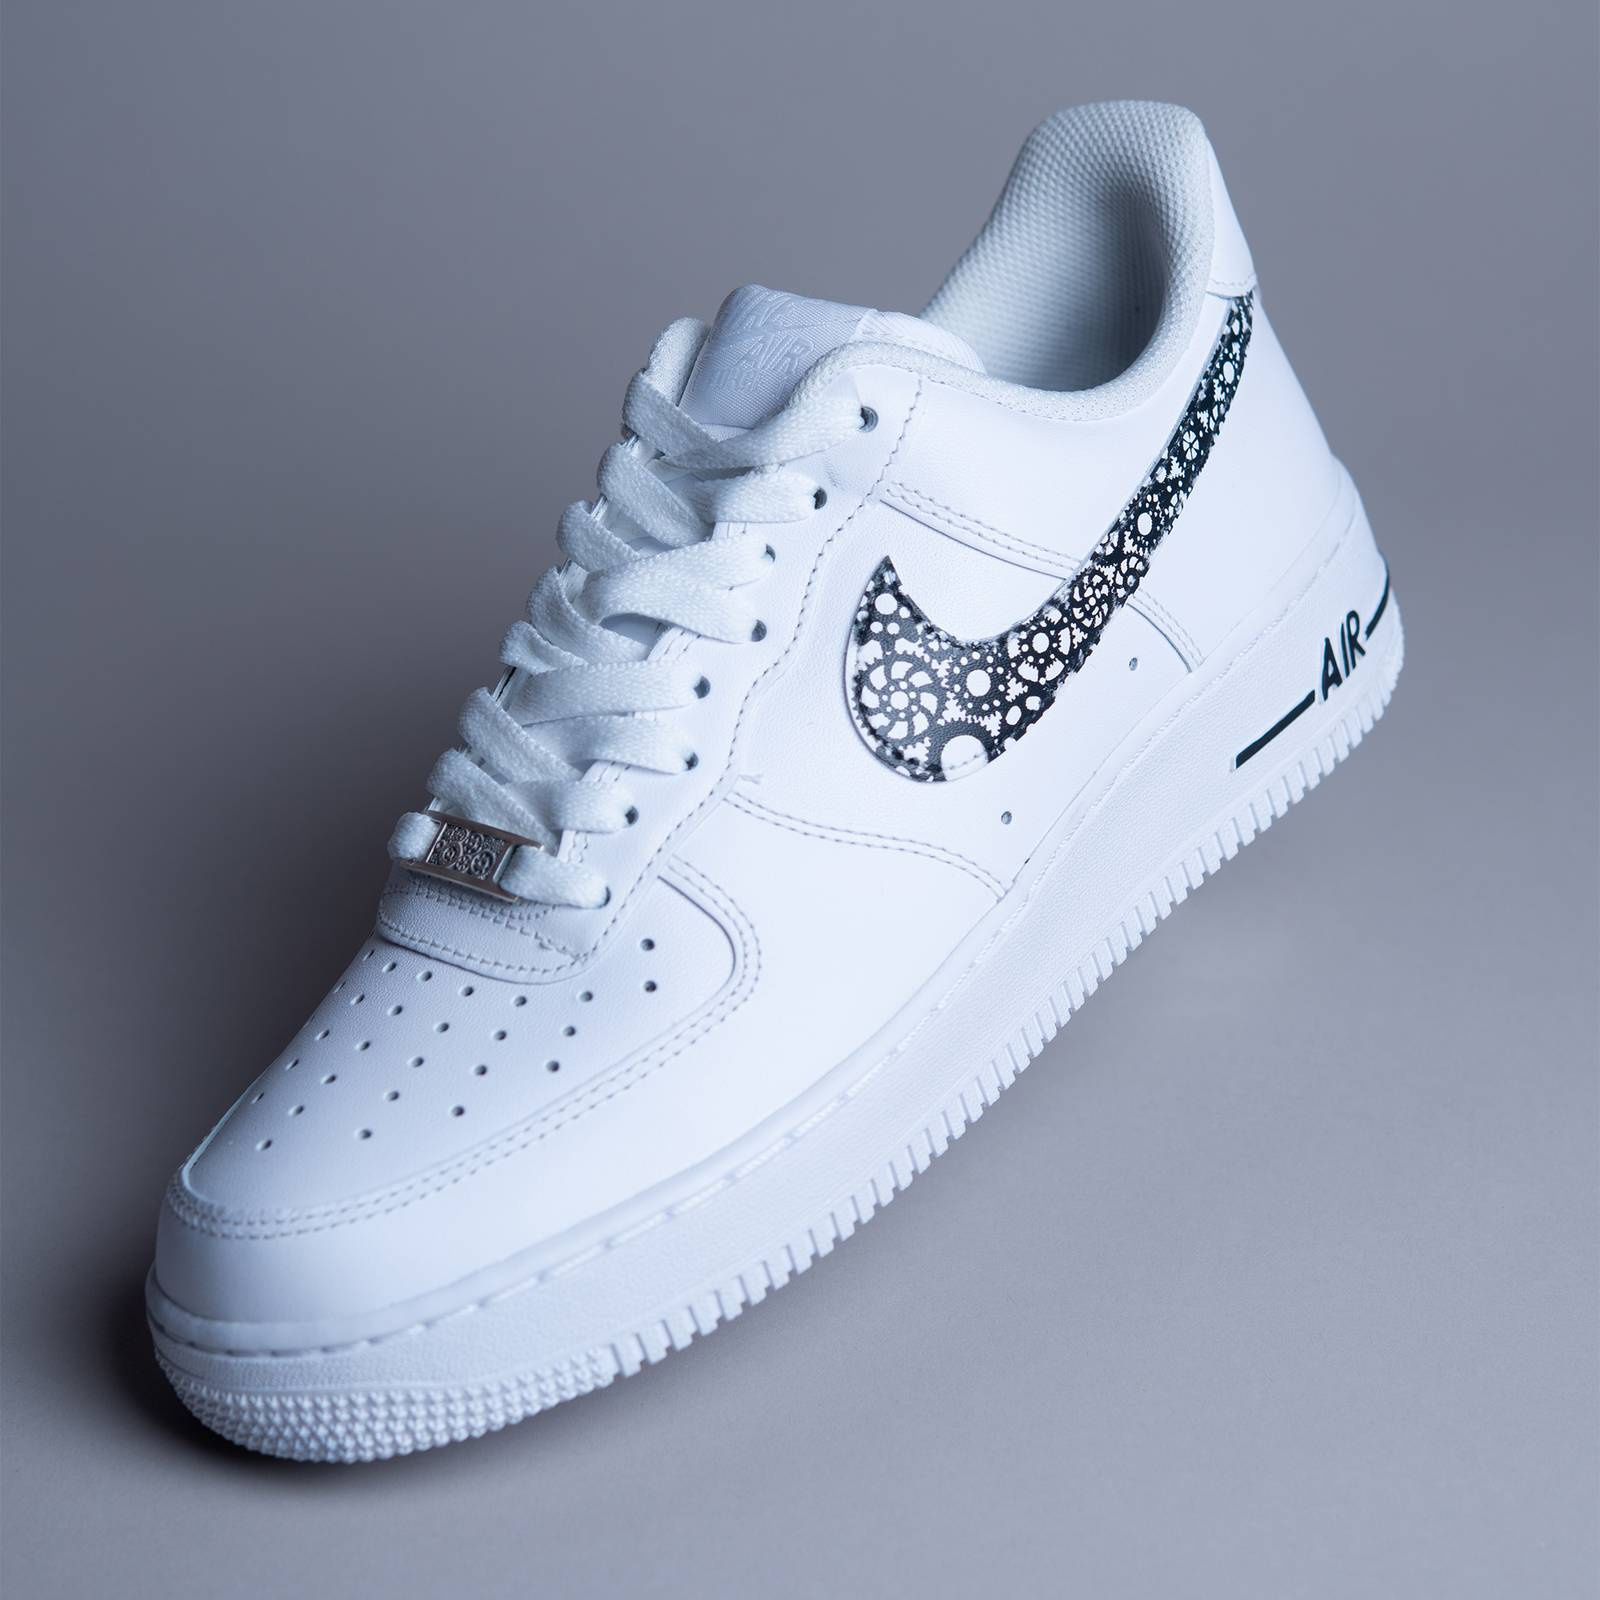 NIKE Nike Air Force One X Tournaire Chaussures Sneakers